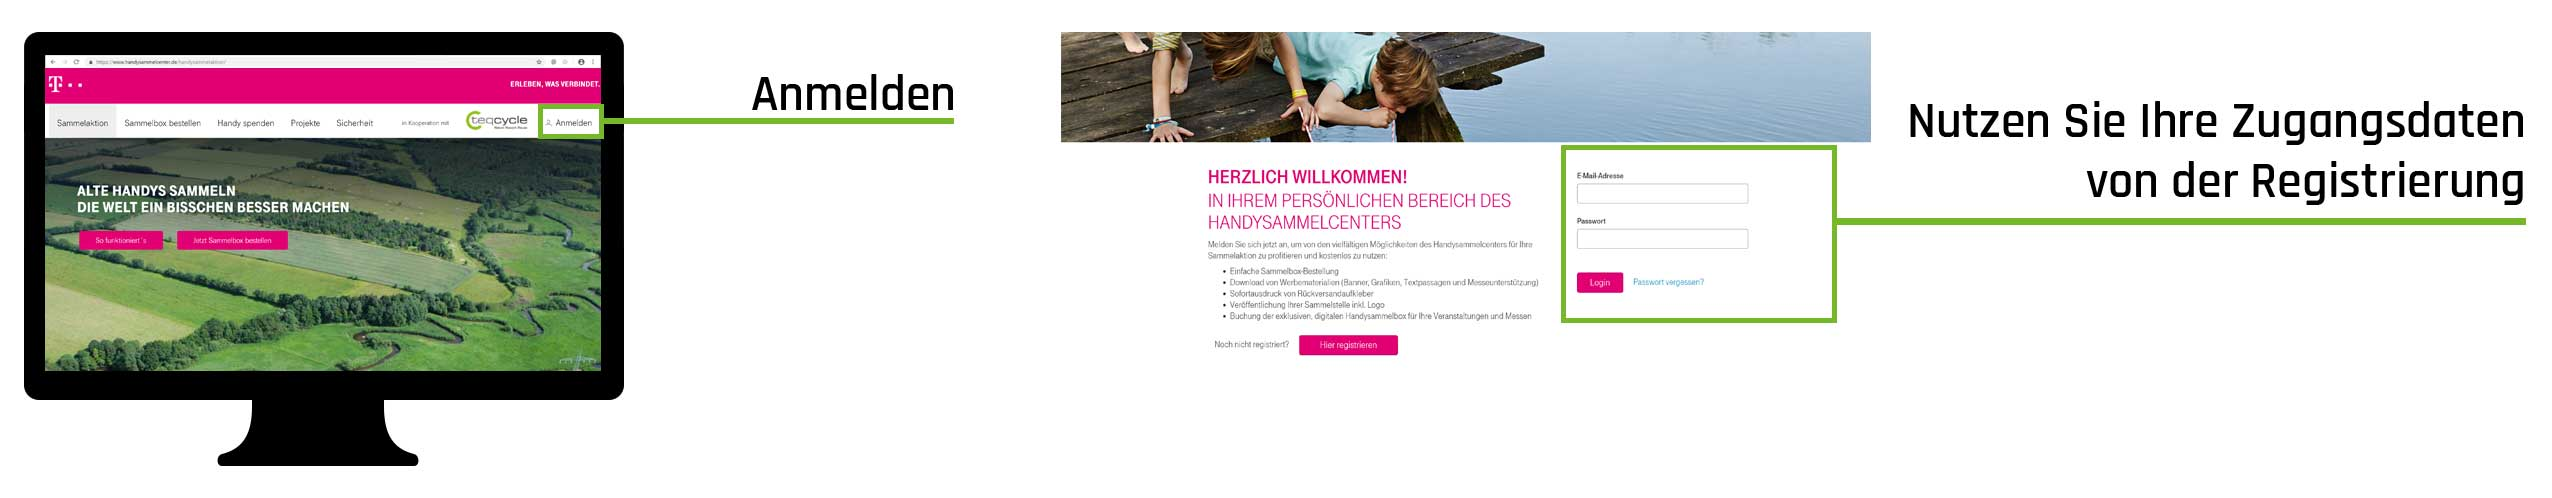 Handyaktion - Sammelstellen-Website der Telekom